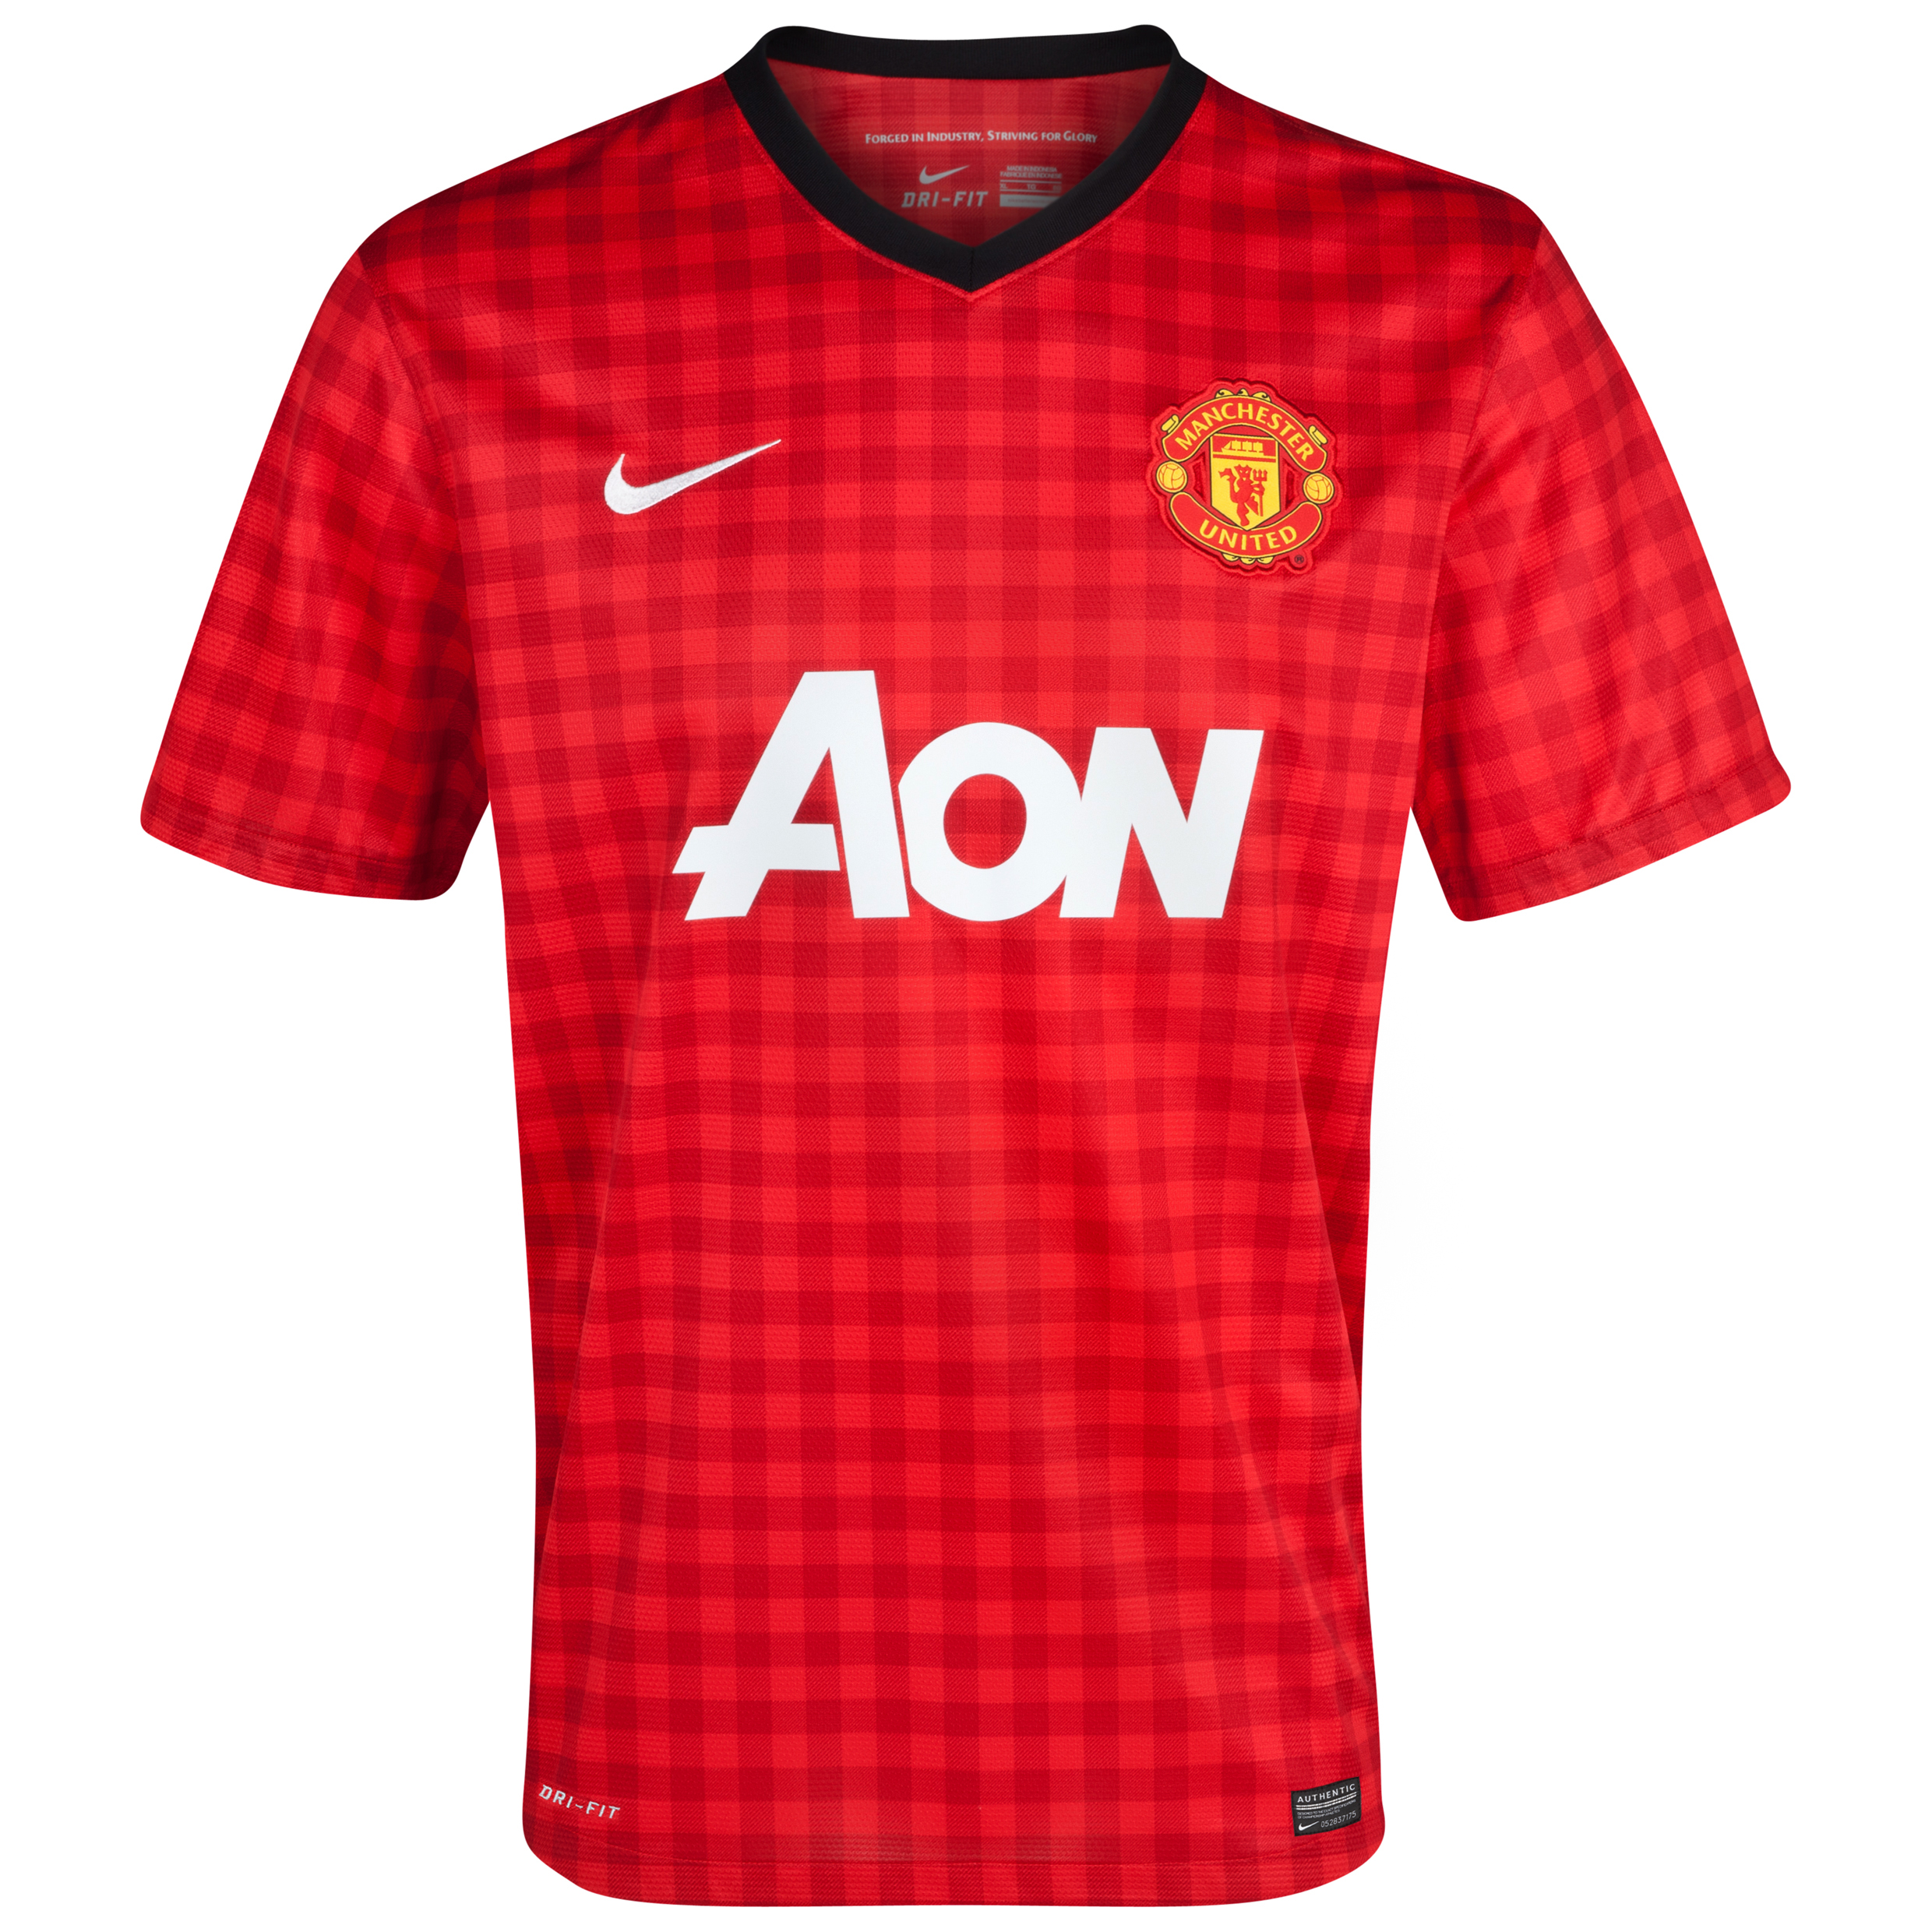 Manchester United Home Shirt 2012/13